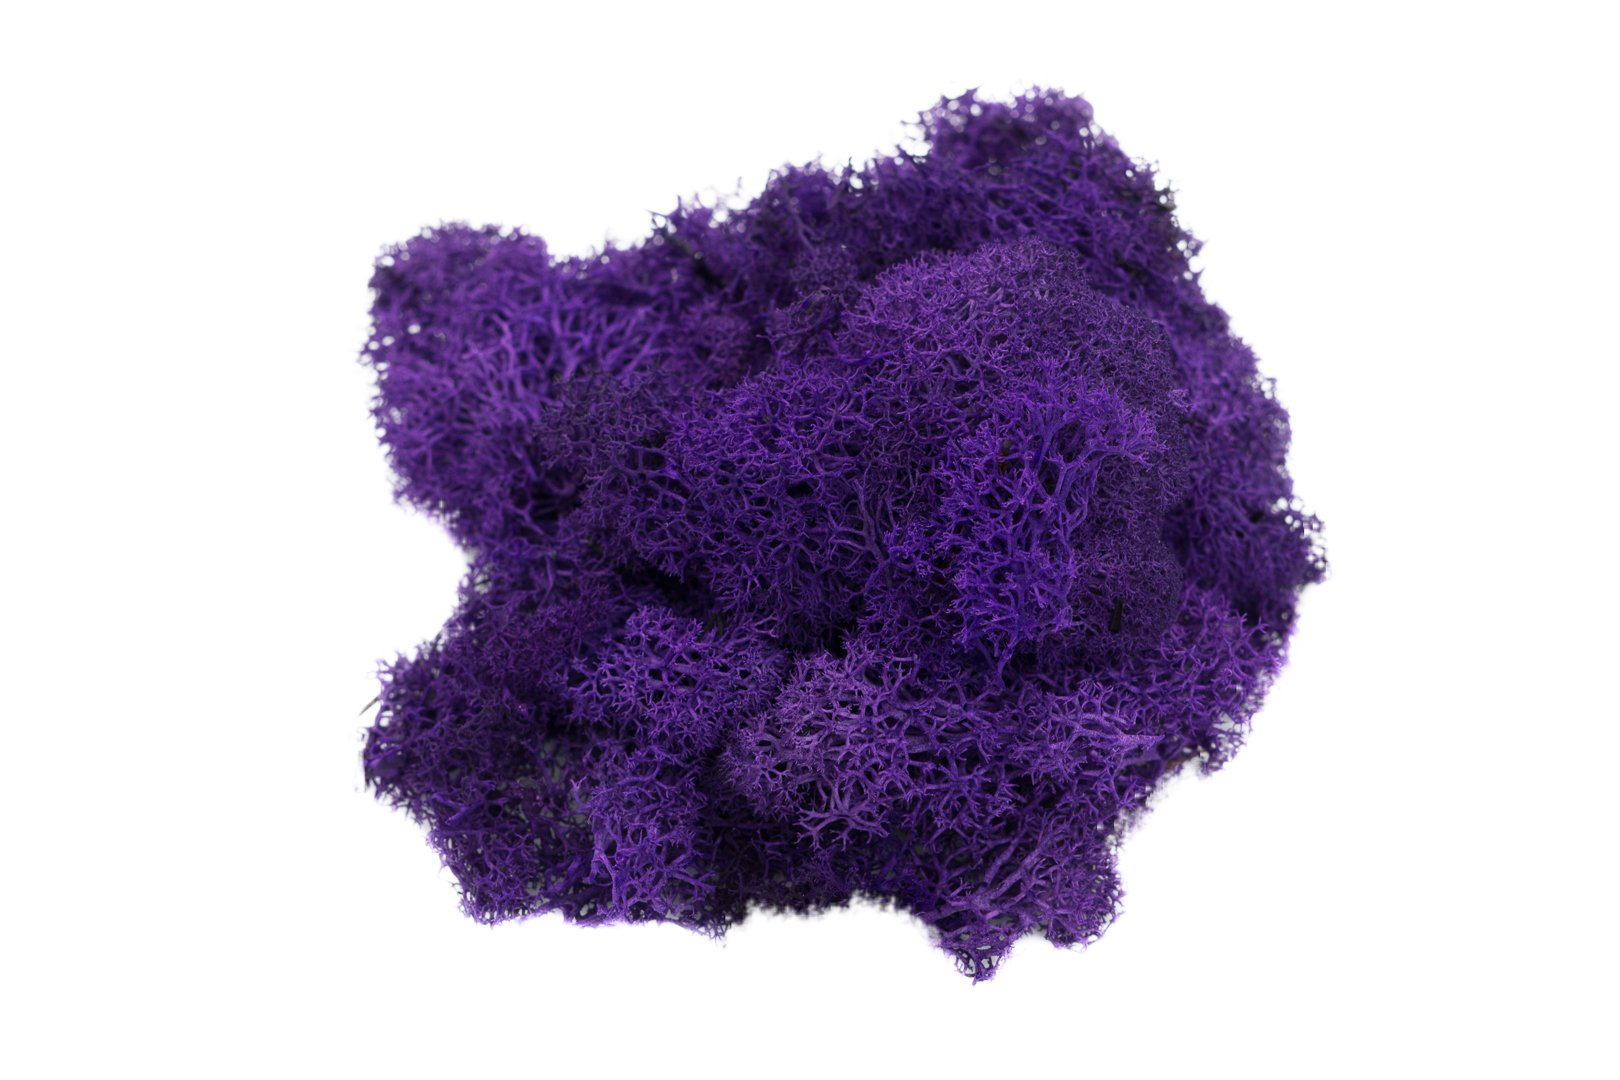 Reindeer Moss Preserved | Purple Moss | for Fairy Gardens, Terrariums, or Any Craft or Floral Project | (8 Ounces) | Plus Free Nautical Ebook by Joseph Rains